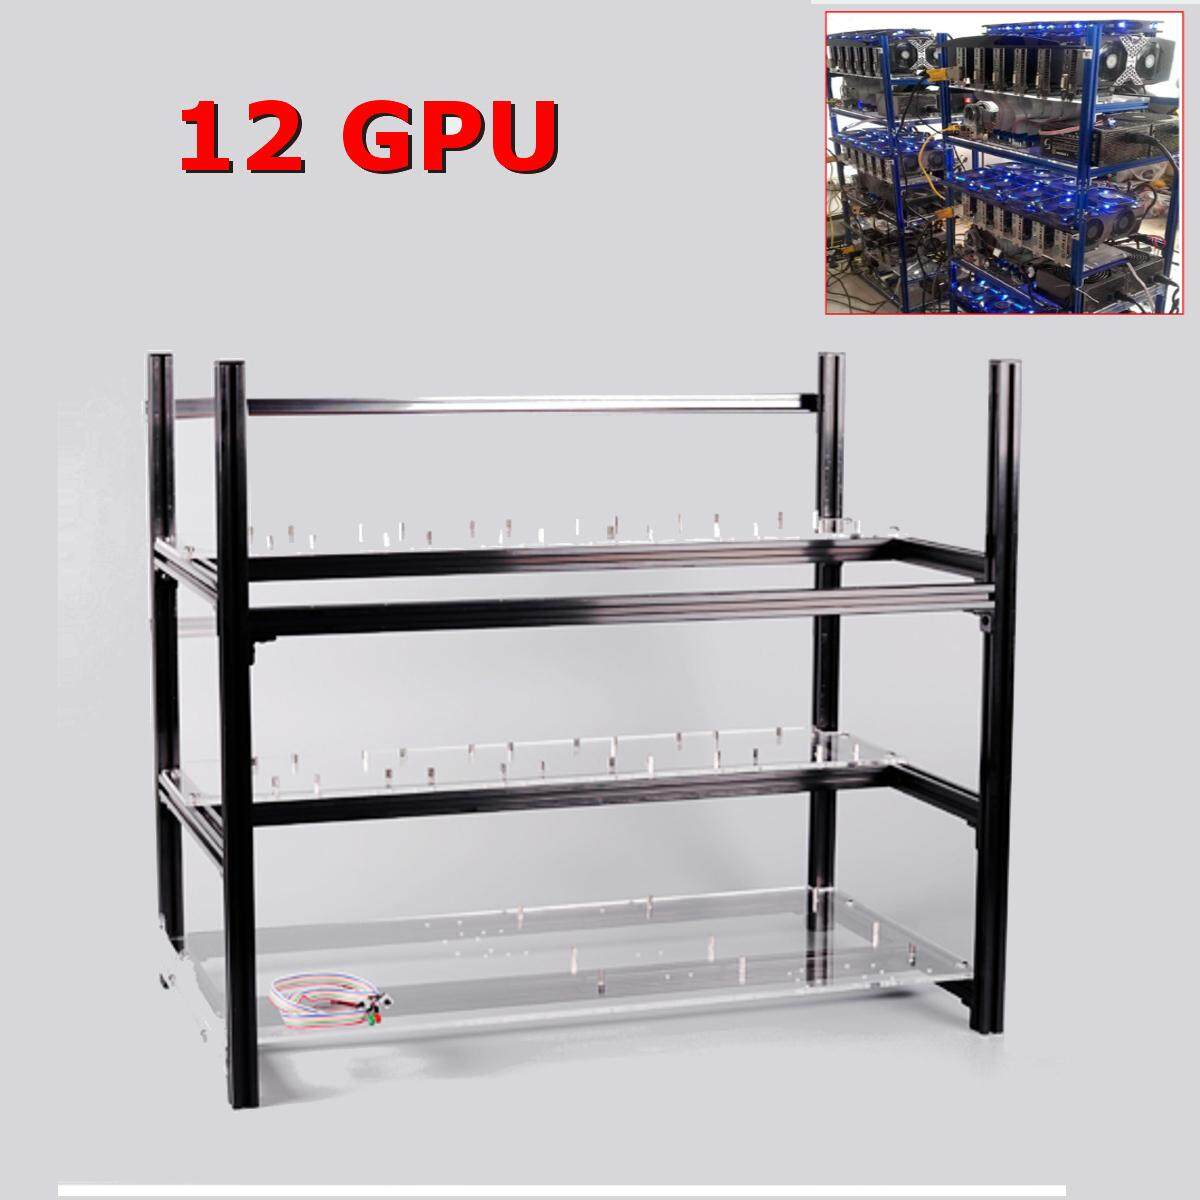 【Free Shipping + Flash Deal】Aluminum Stackable Frame Case Open Air Mining  Miner Rig 12 GPU For ETH Ethereum